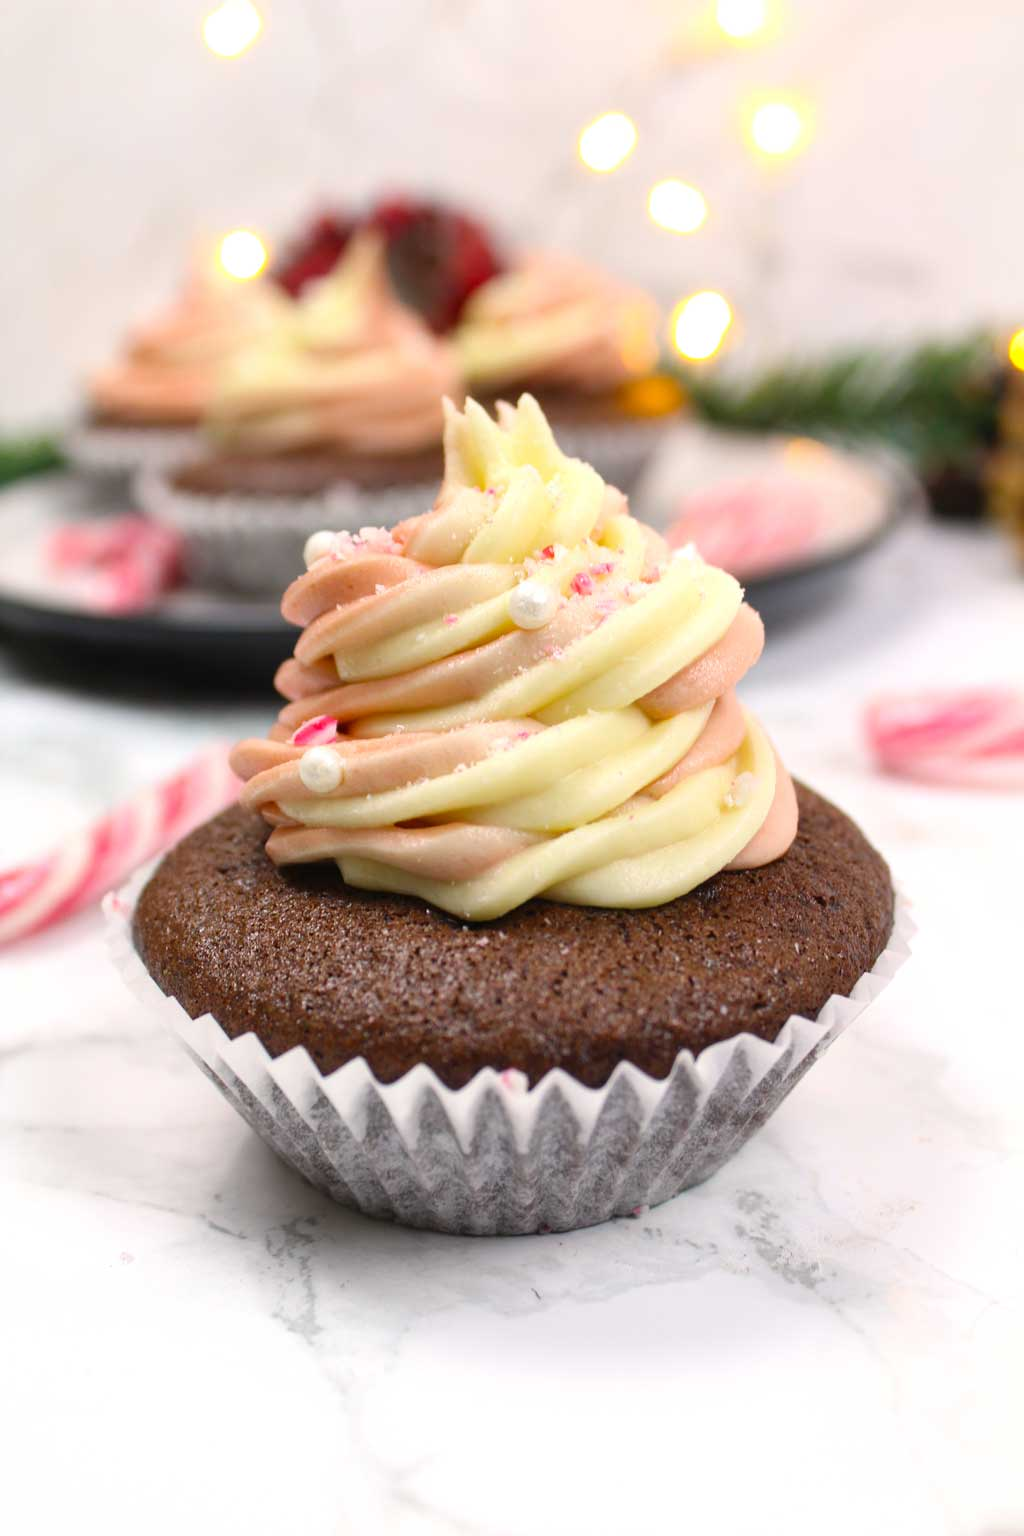 a candy cane cupcake with buttercream frosting on top